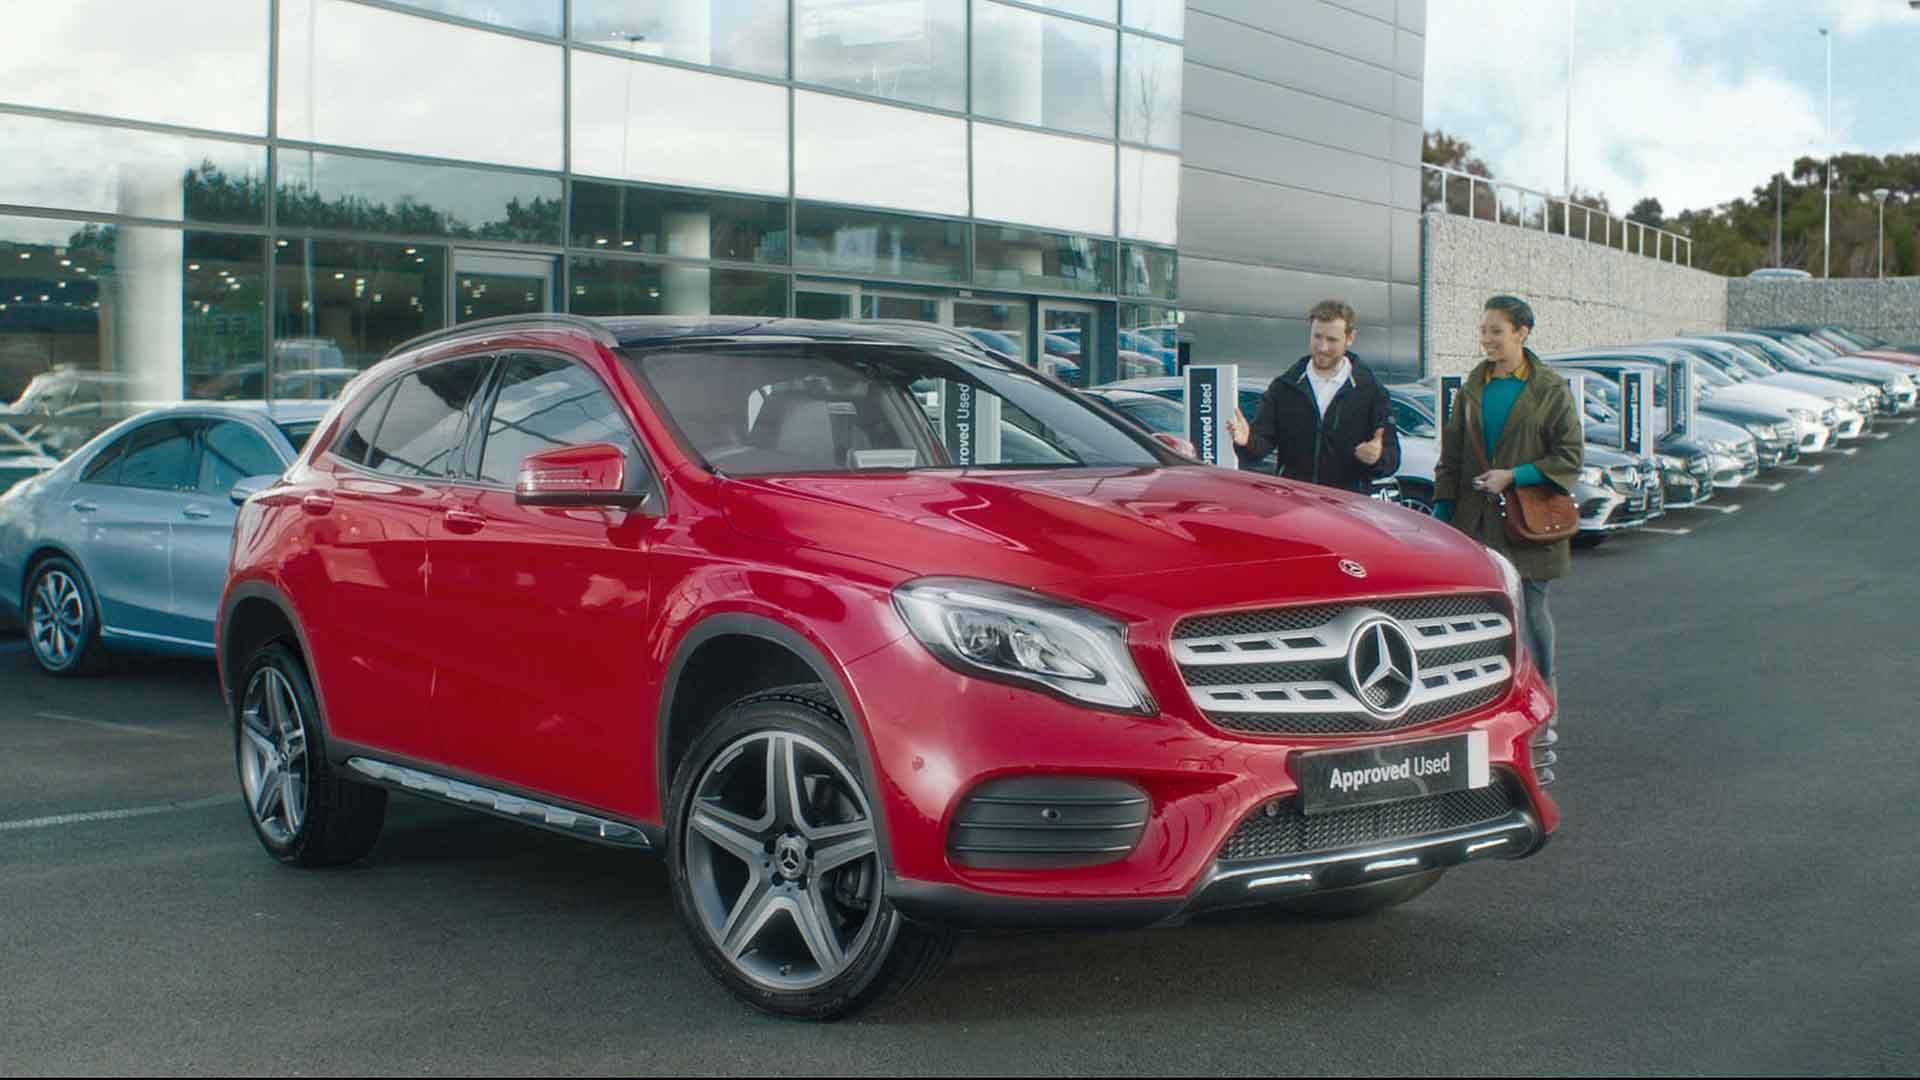 Mercedes-Benz used car sales